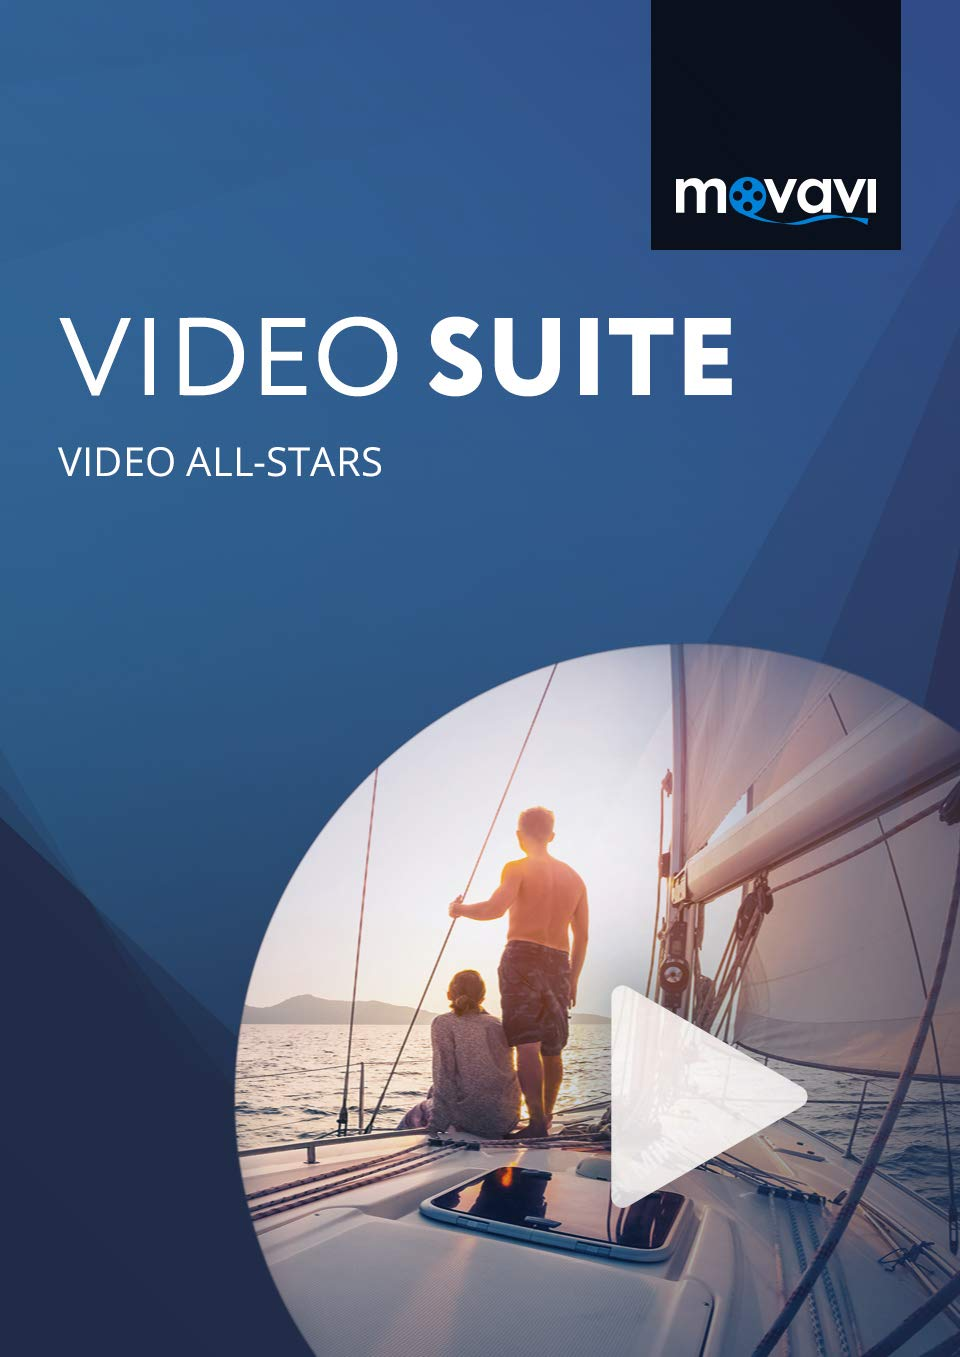 Movavi Video Suite 18 Business [PC Download] by Movavi Software Inc